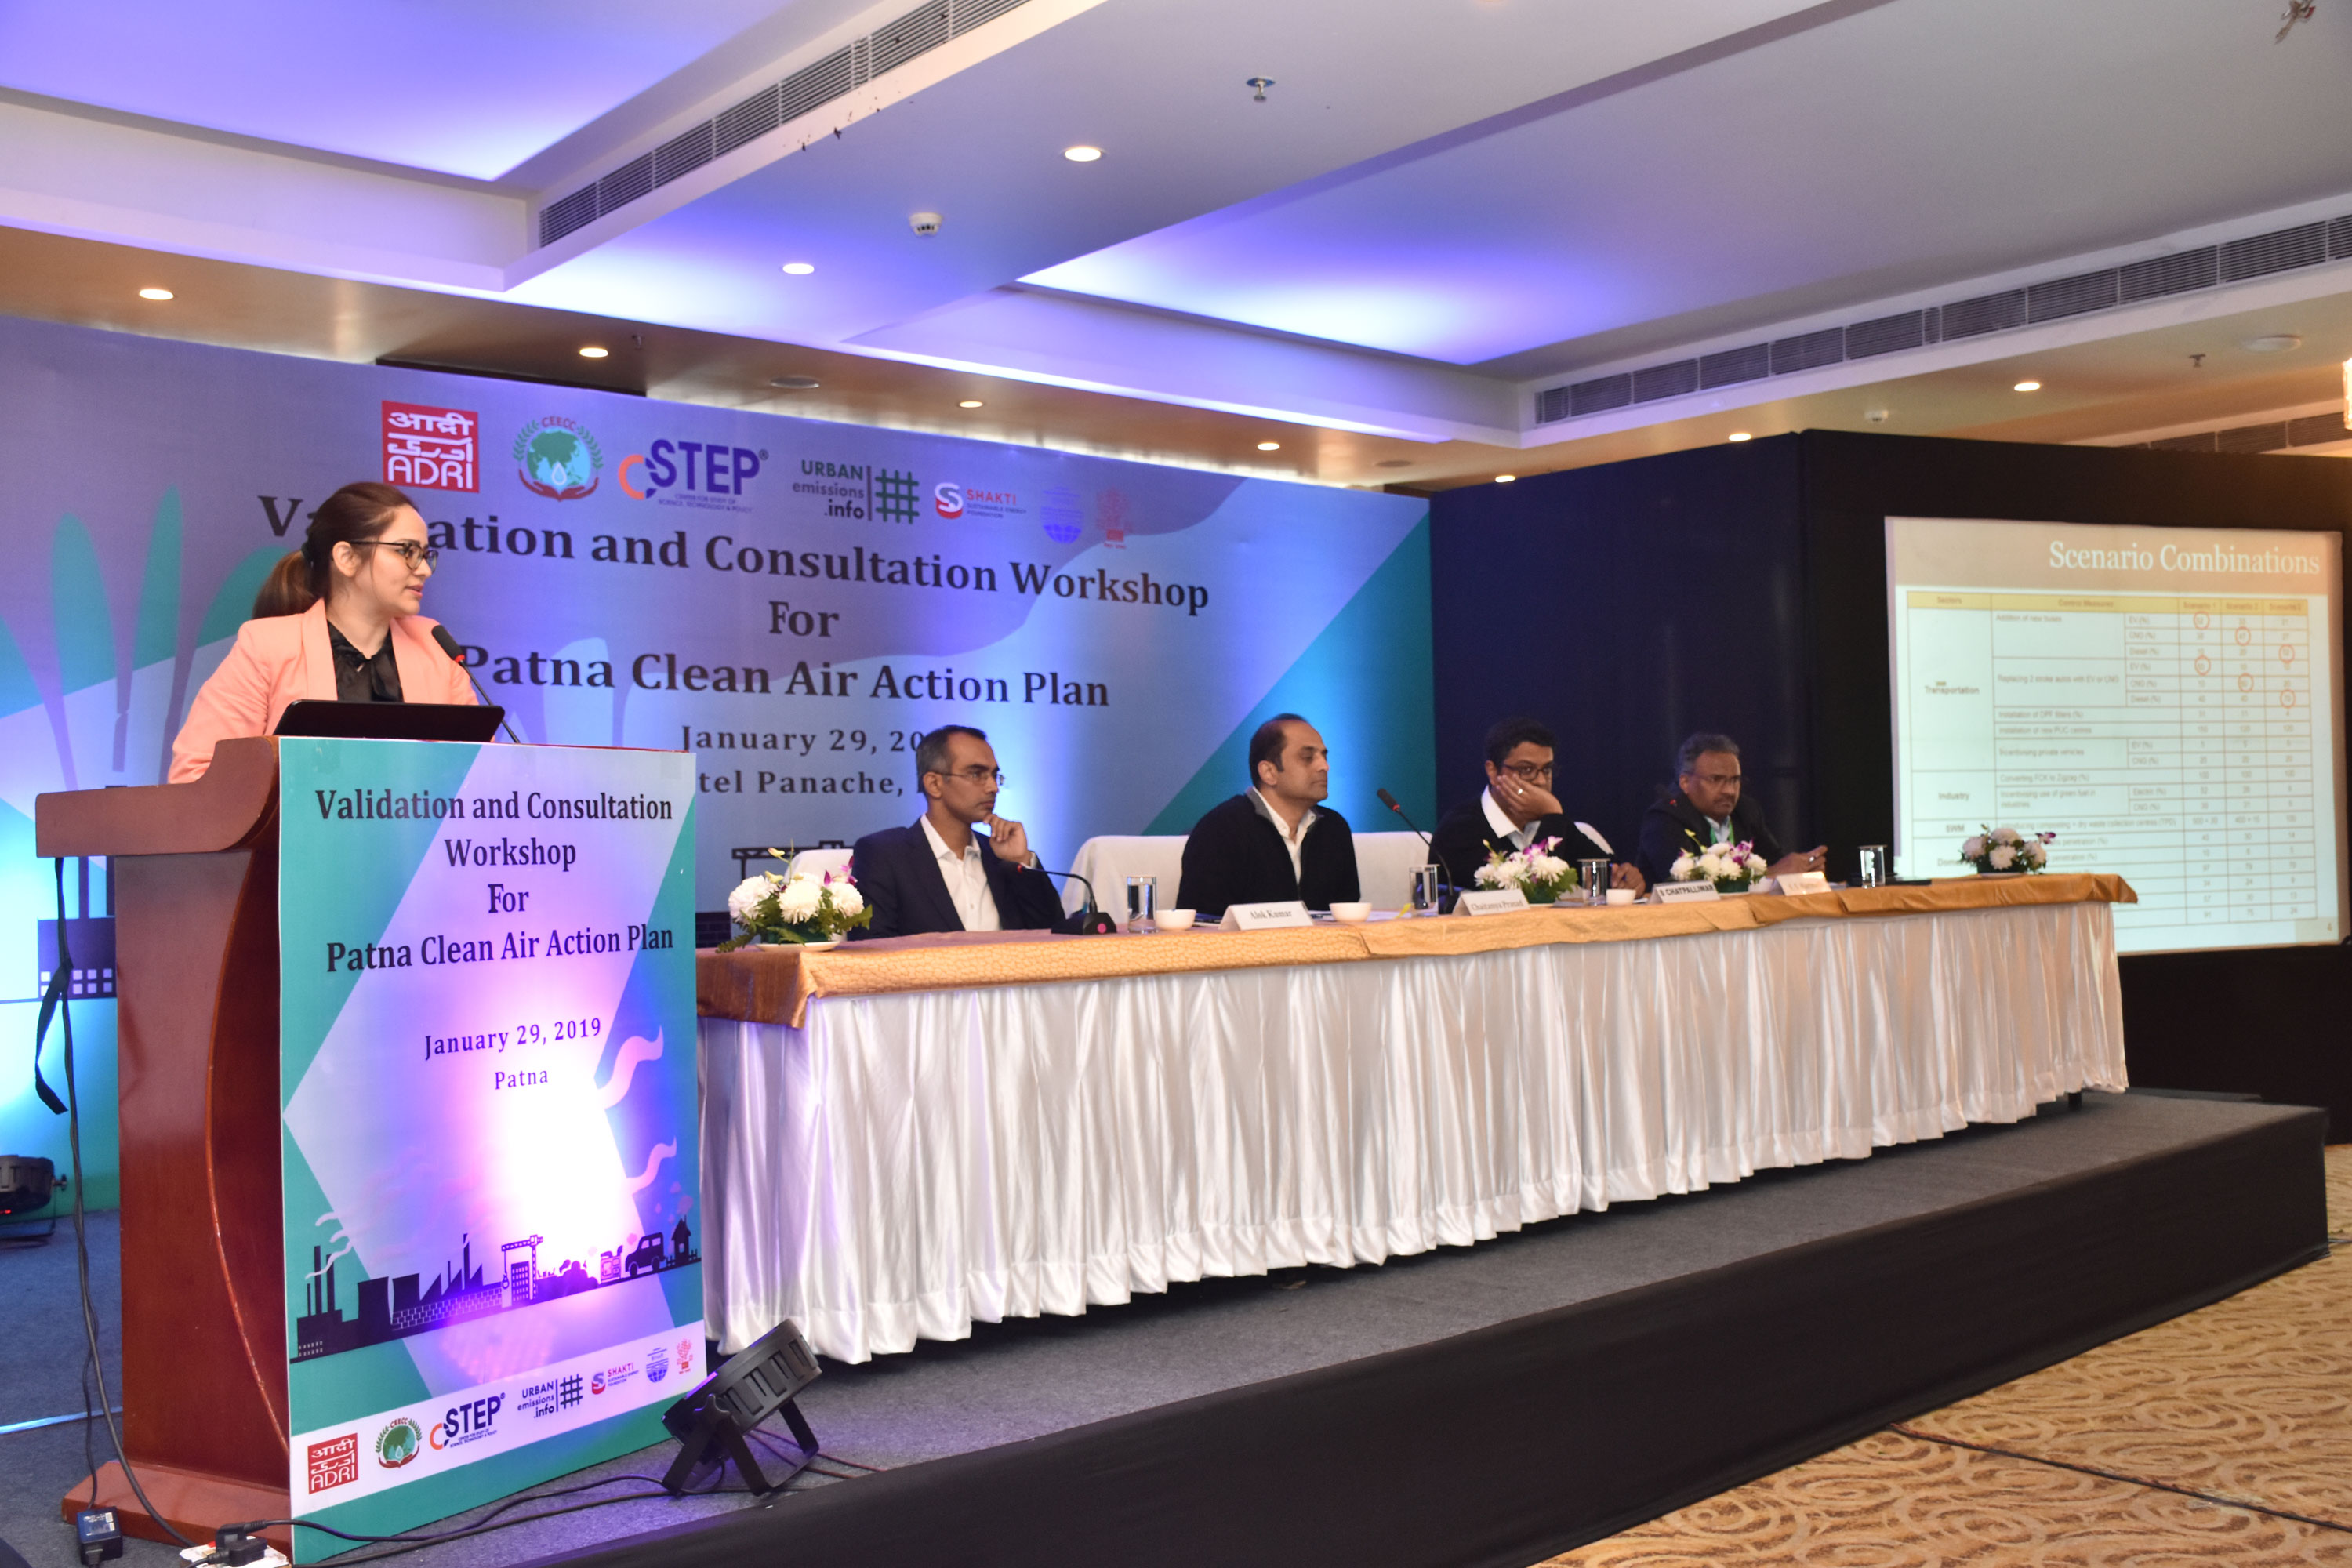 Validation and Consultation Workshop for Patna Clean Air Action Plan (PCAAP)